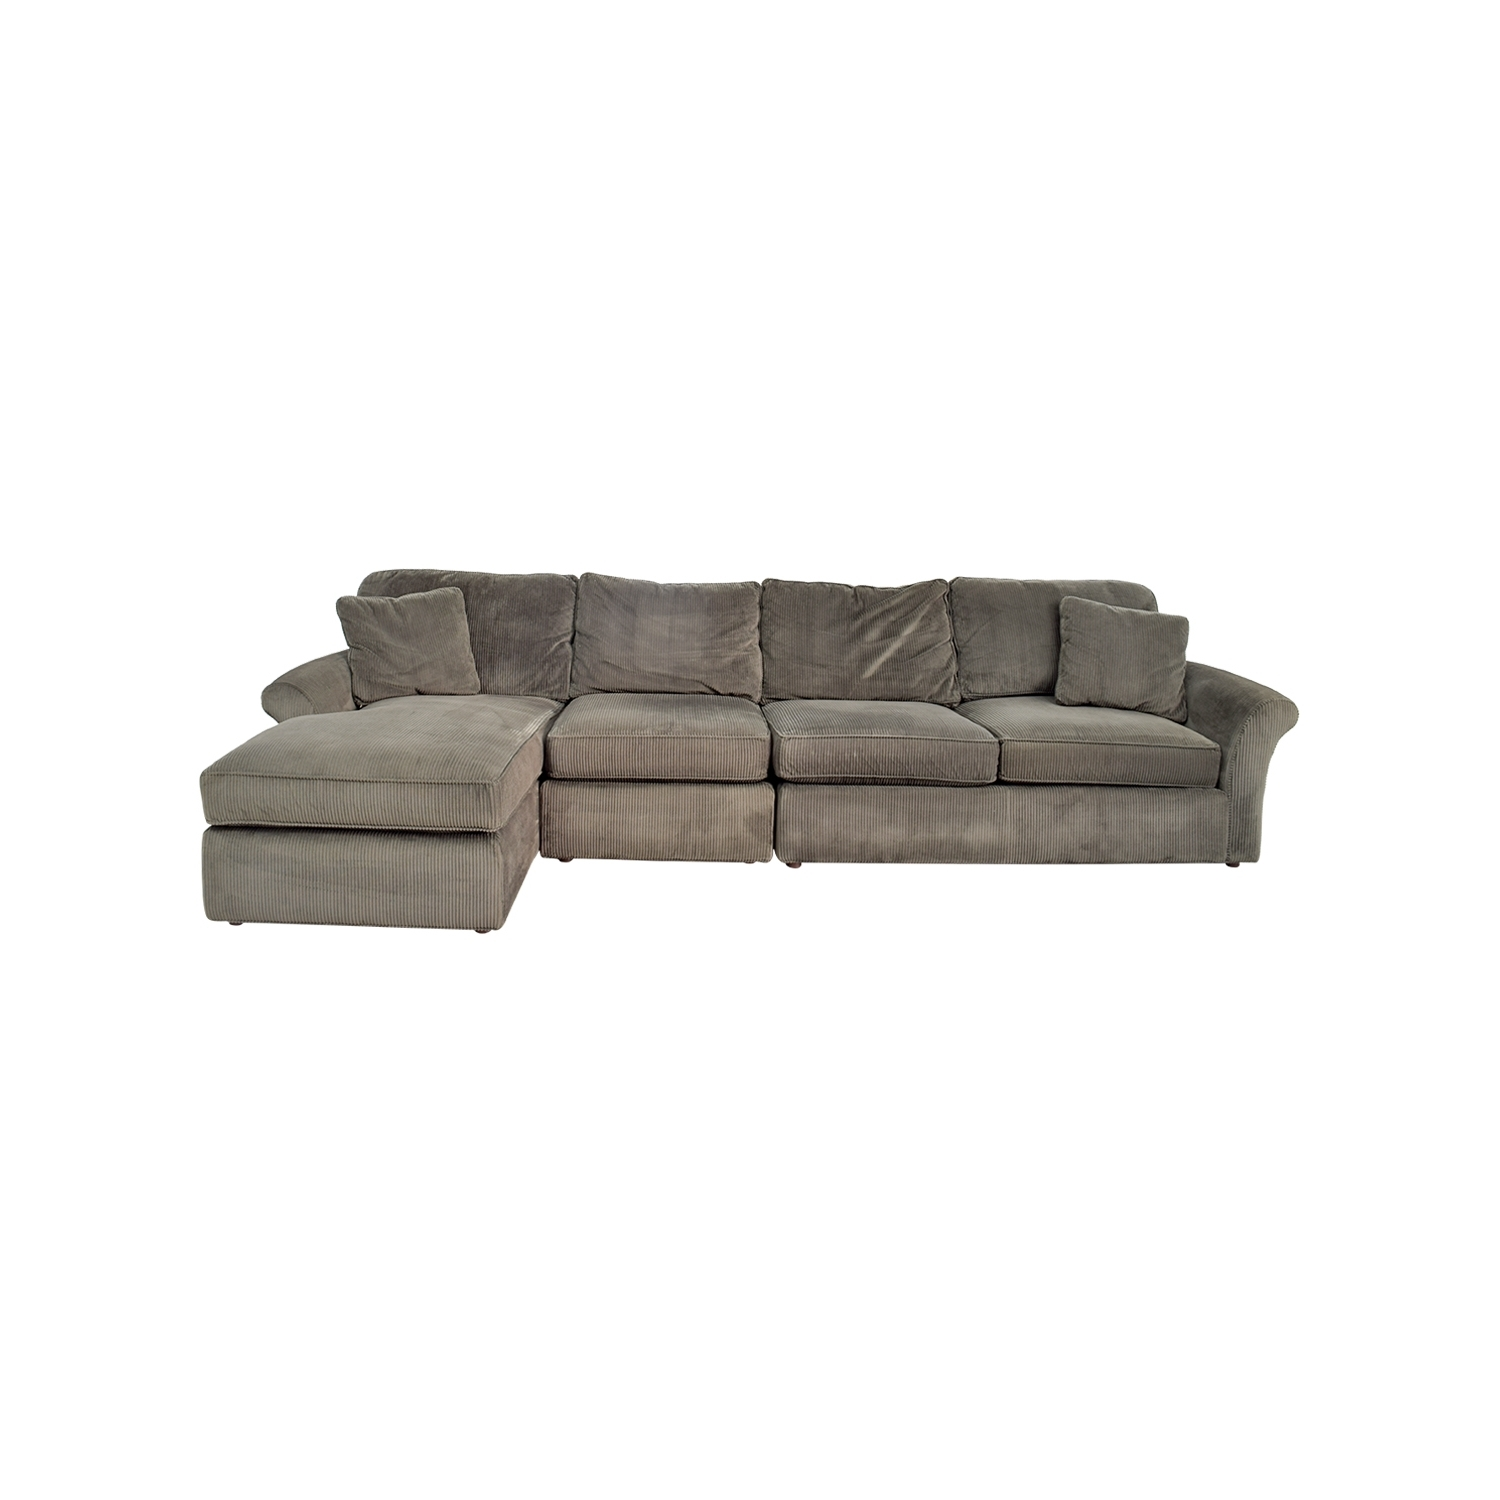 [%74% Off – Macy's Macy's Modern Concepts Charcoal Gray Corduroy Intended For Most Up To Date Macys Sectional Sofas|Macys Sectional Sofas Inside Most Recent 74% Off – Macy's Macy's Modern Concepts Charcoal Gray Corduroy|2018 Macys Sectional Sofas Inside 74% Off – Macy's Macy's Modern Concepts Charcoal Gray Corduroy|Well Known 74% Off – Macy's Macy's Modern Concepts Charcoal Gray Corduroy Inside Macys Sectional Sofas%] (View 3 of 15)